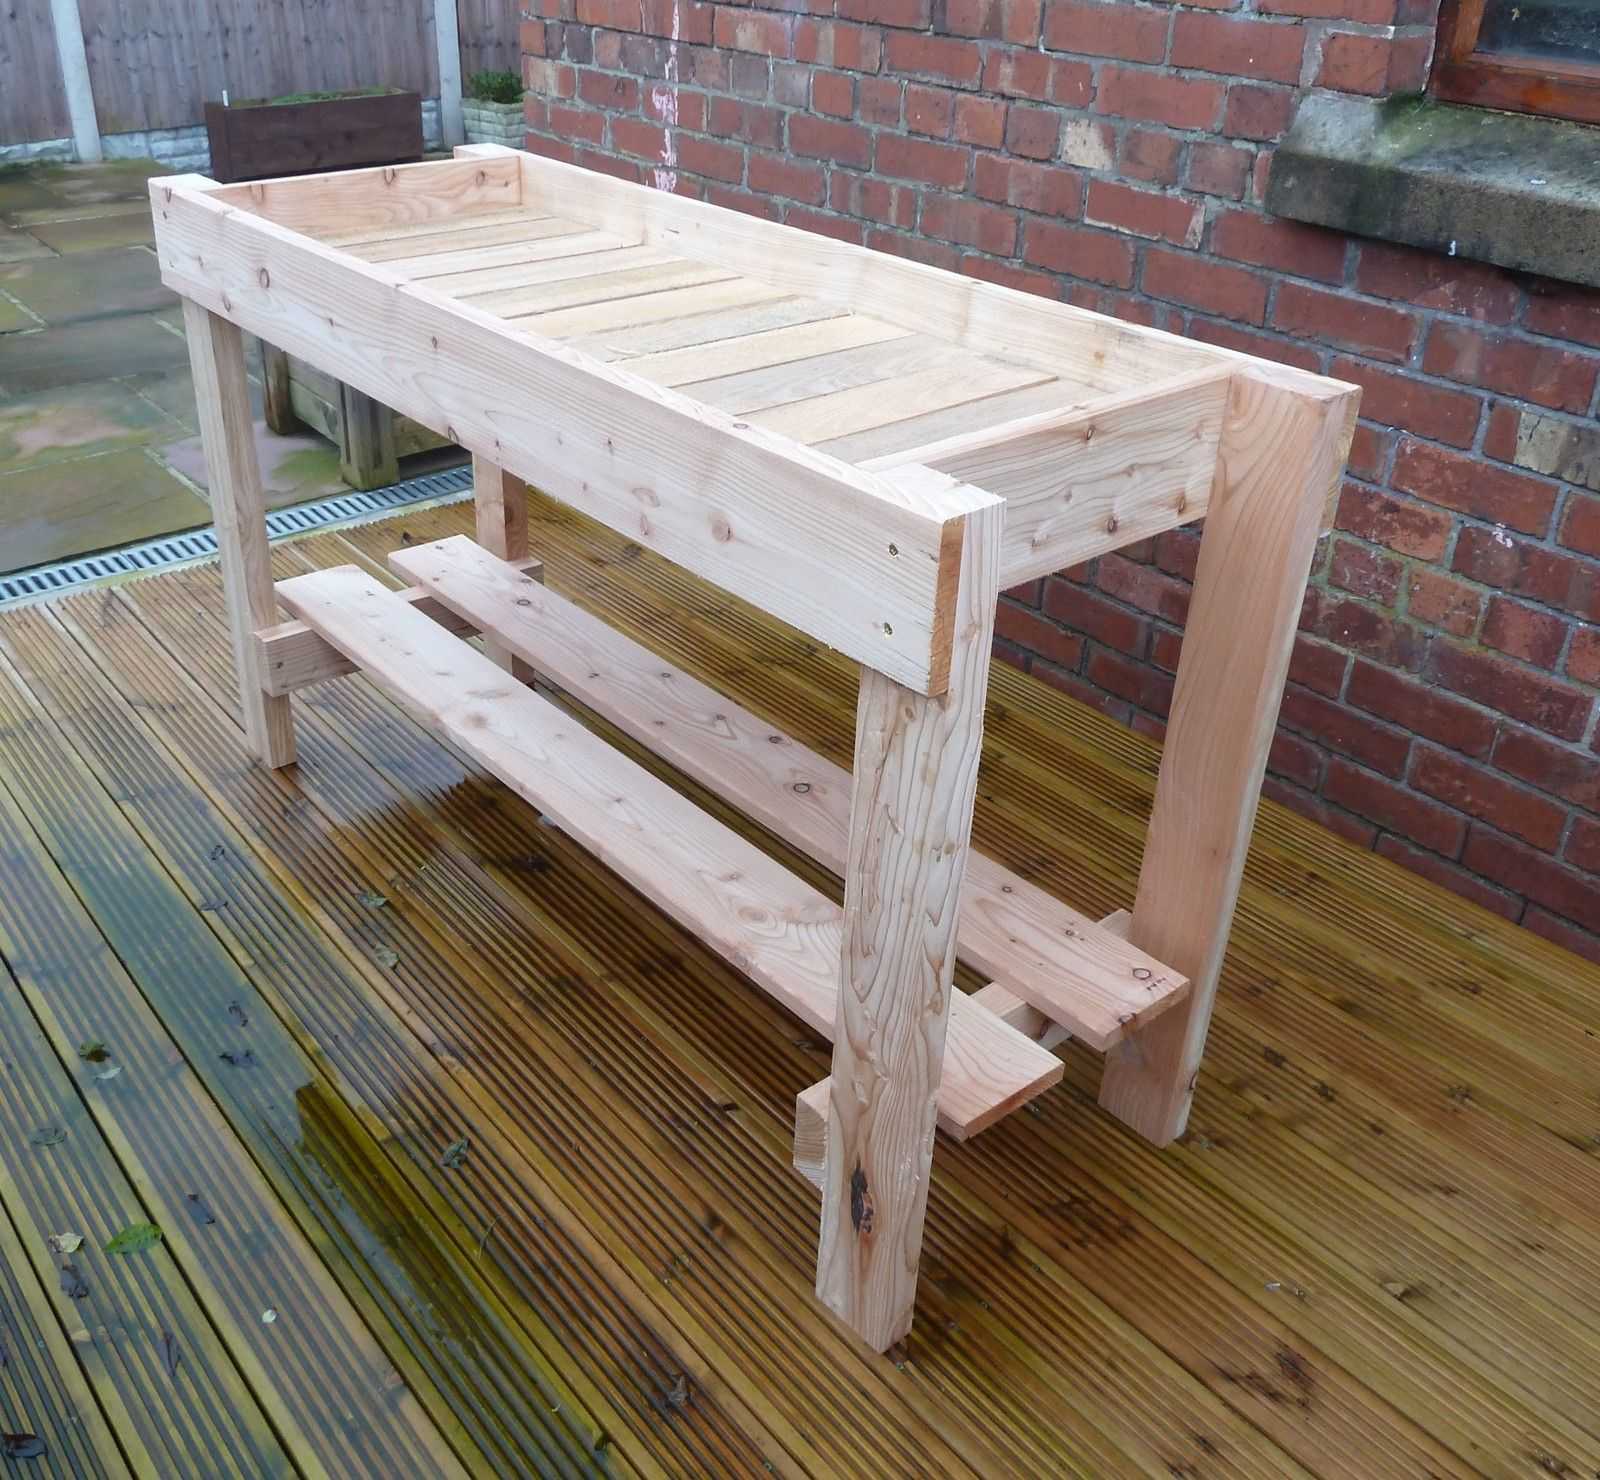 greenhouse potting table - growing table 1.45m long - great value